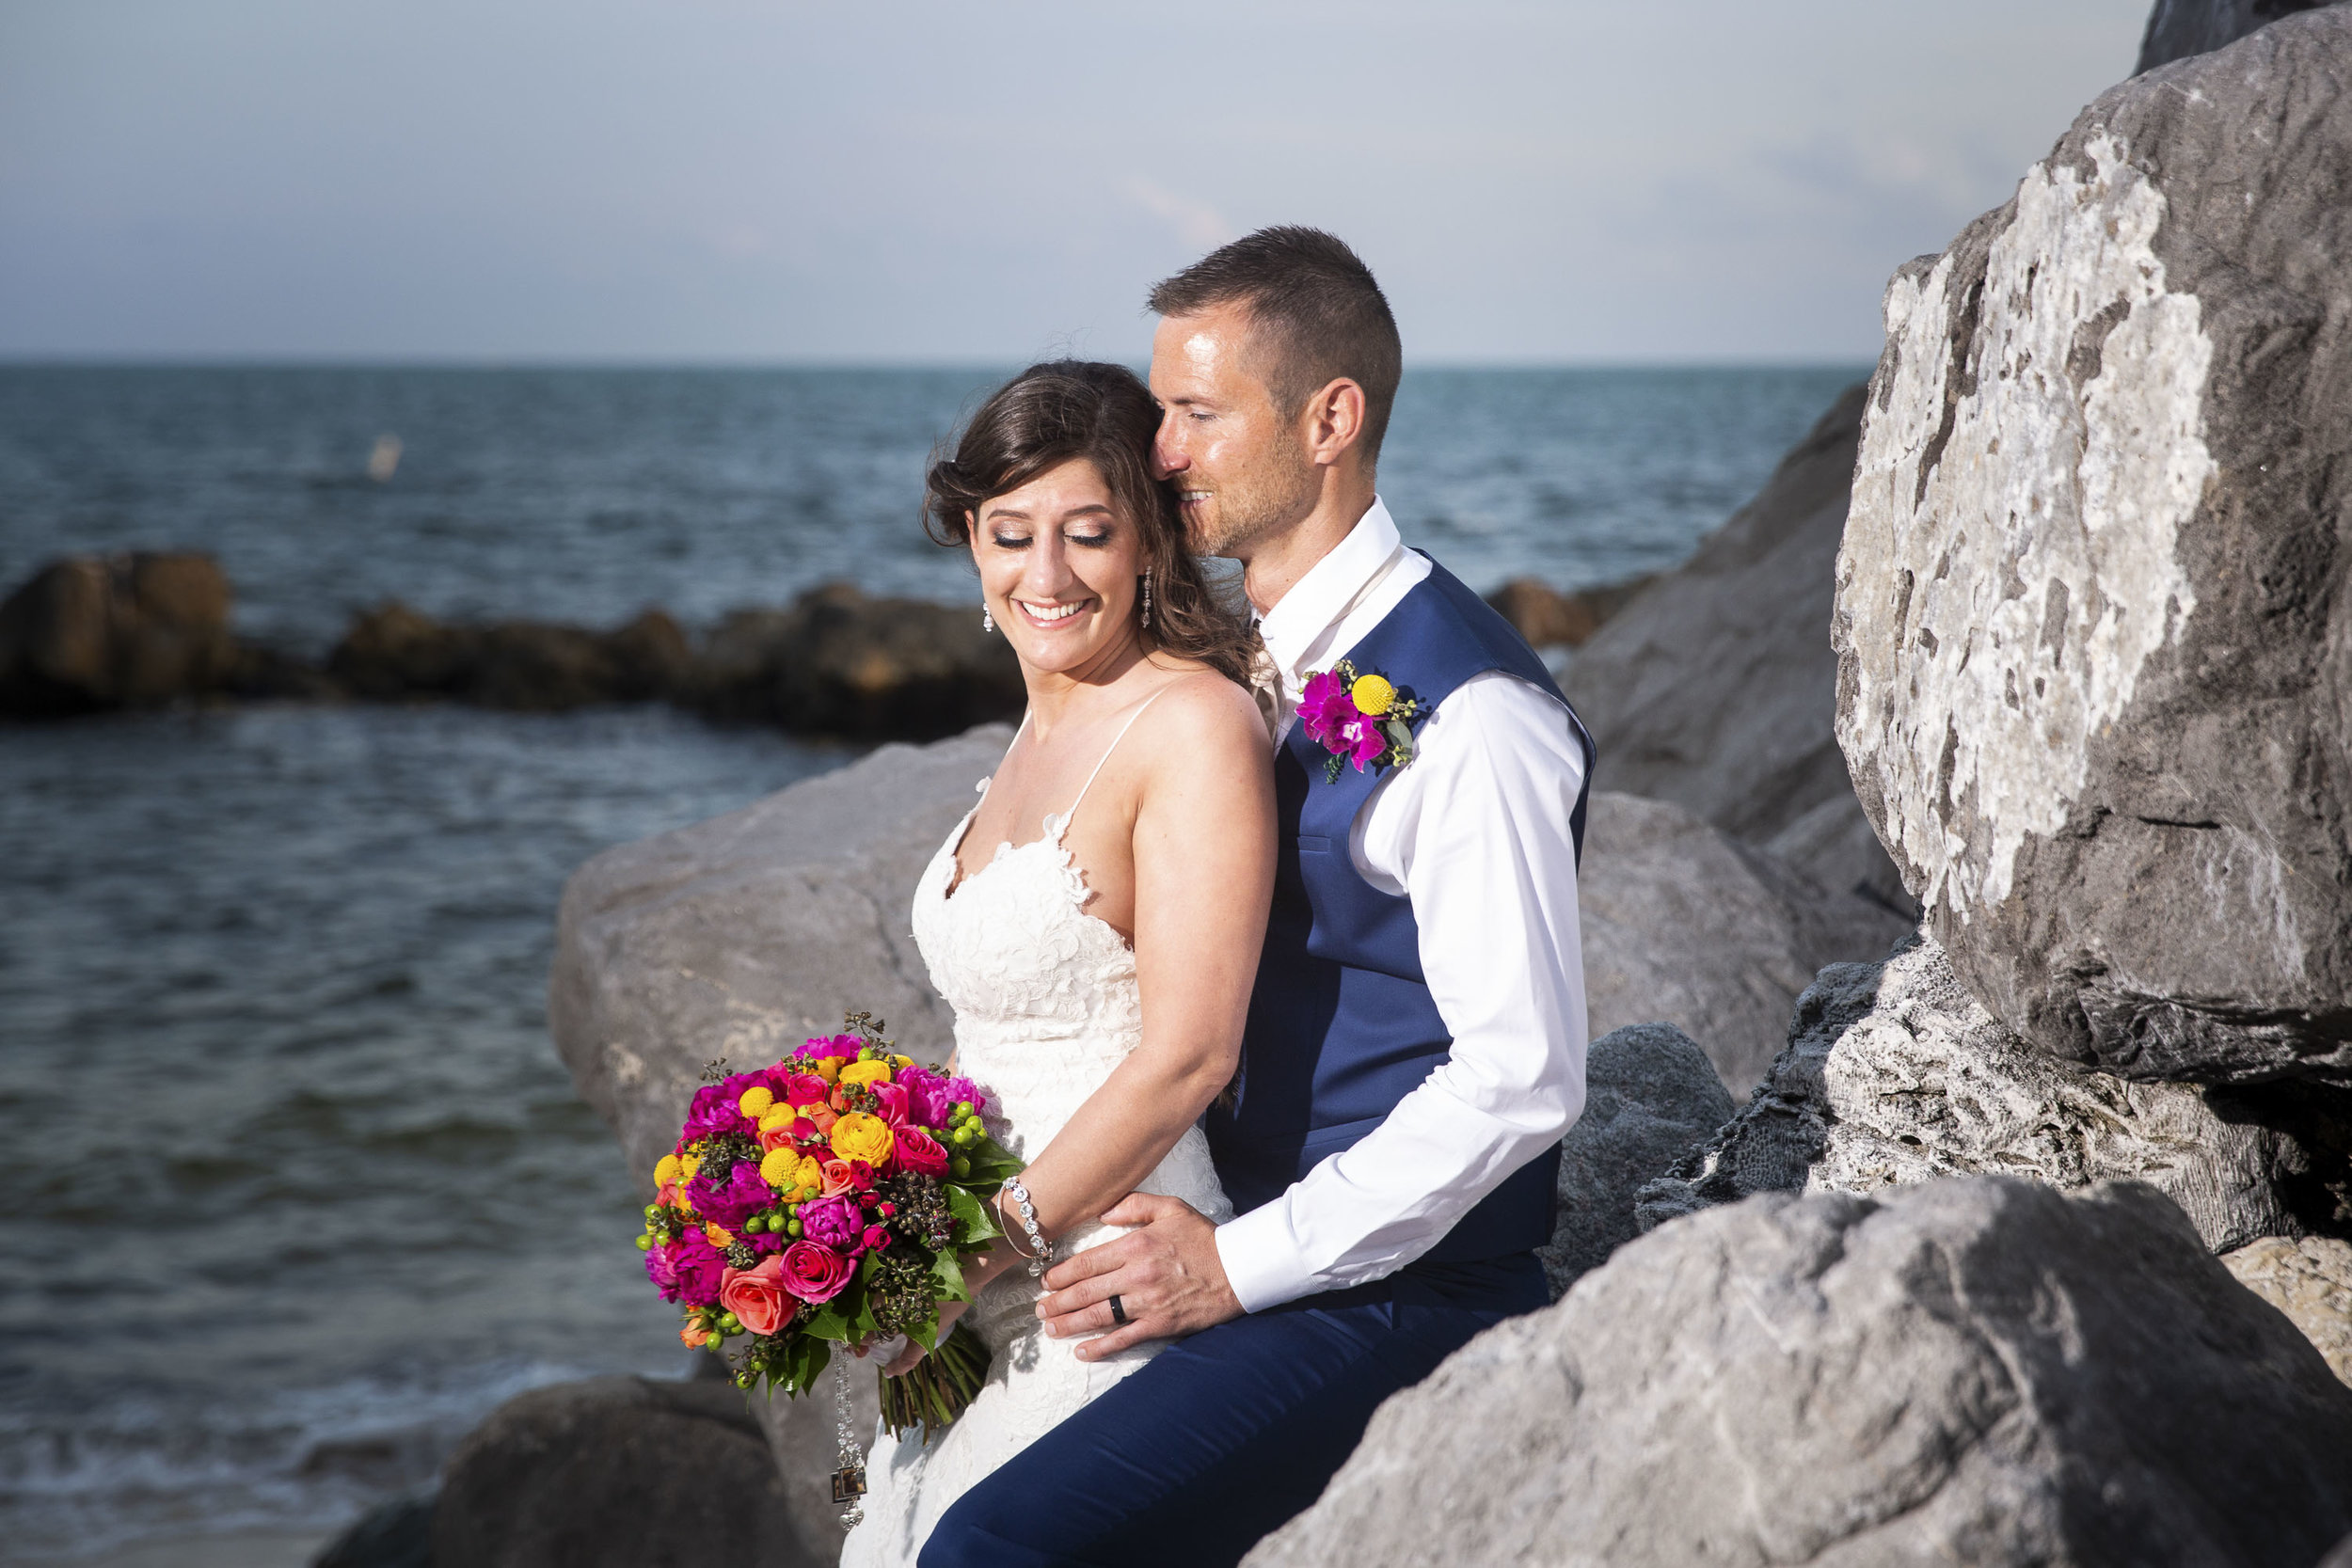 Snuggling on the rock jetty at Fort Zach after a Key West wedding ceremony